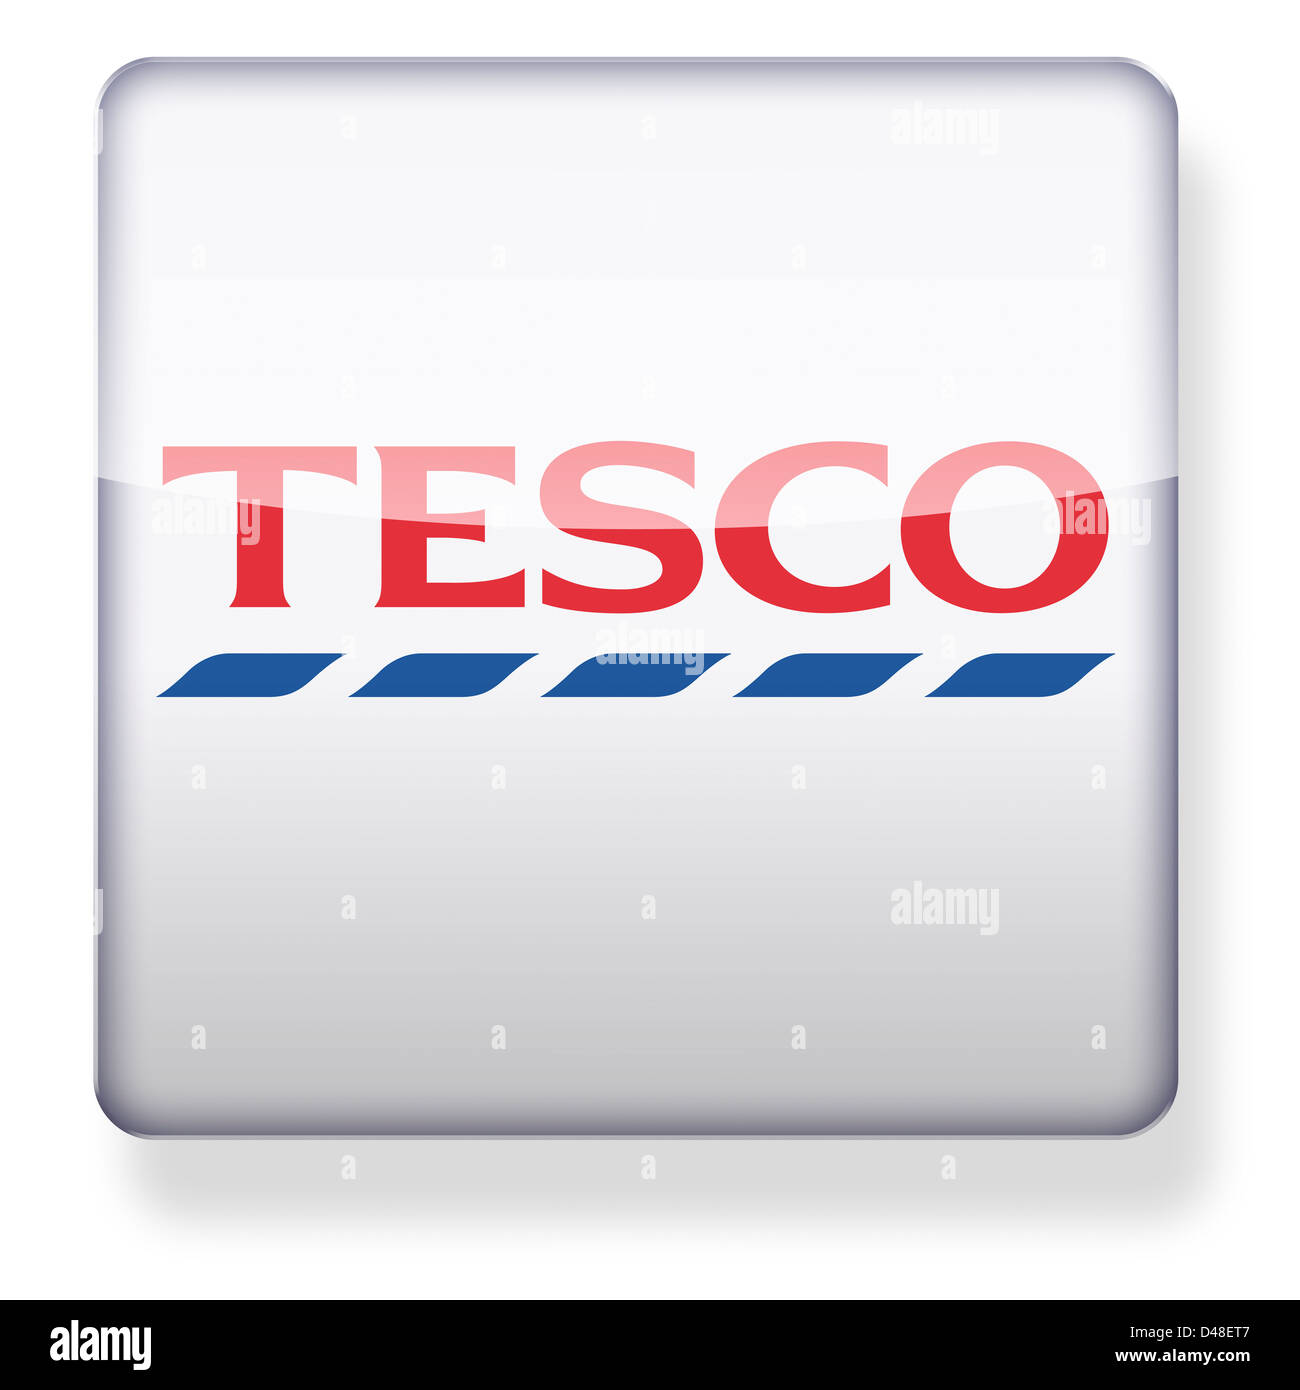 Tesco Logo Stock Photos Amp Tesco Logo Stock Images Alamy